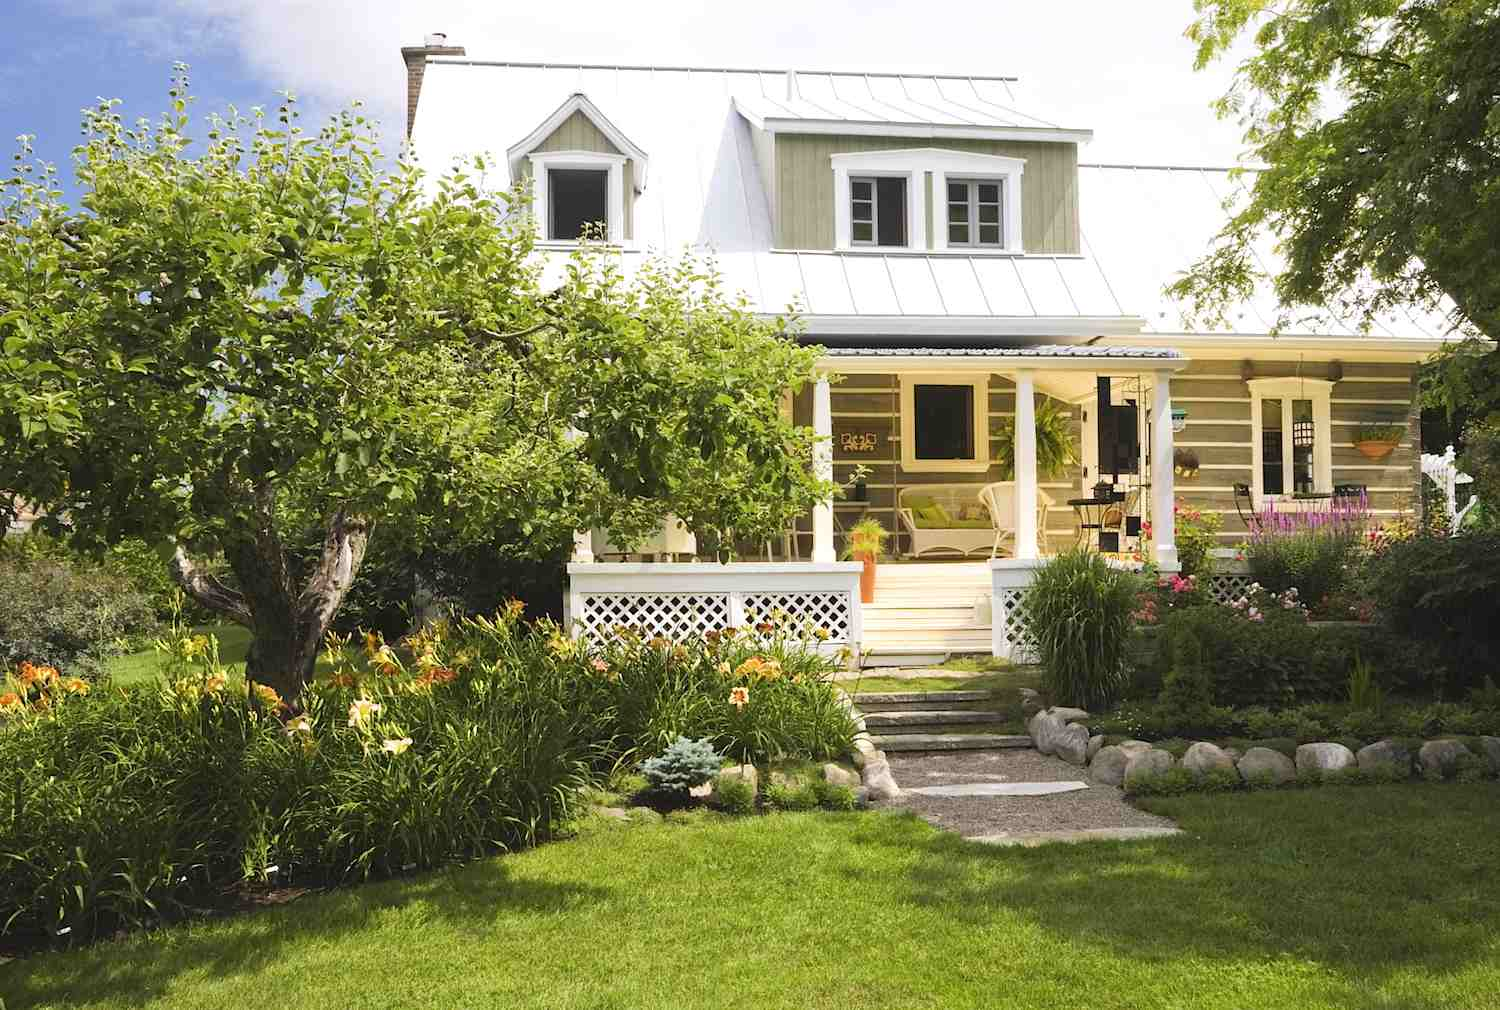 Enticing curb appeal ideas